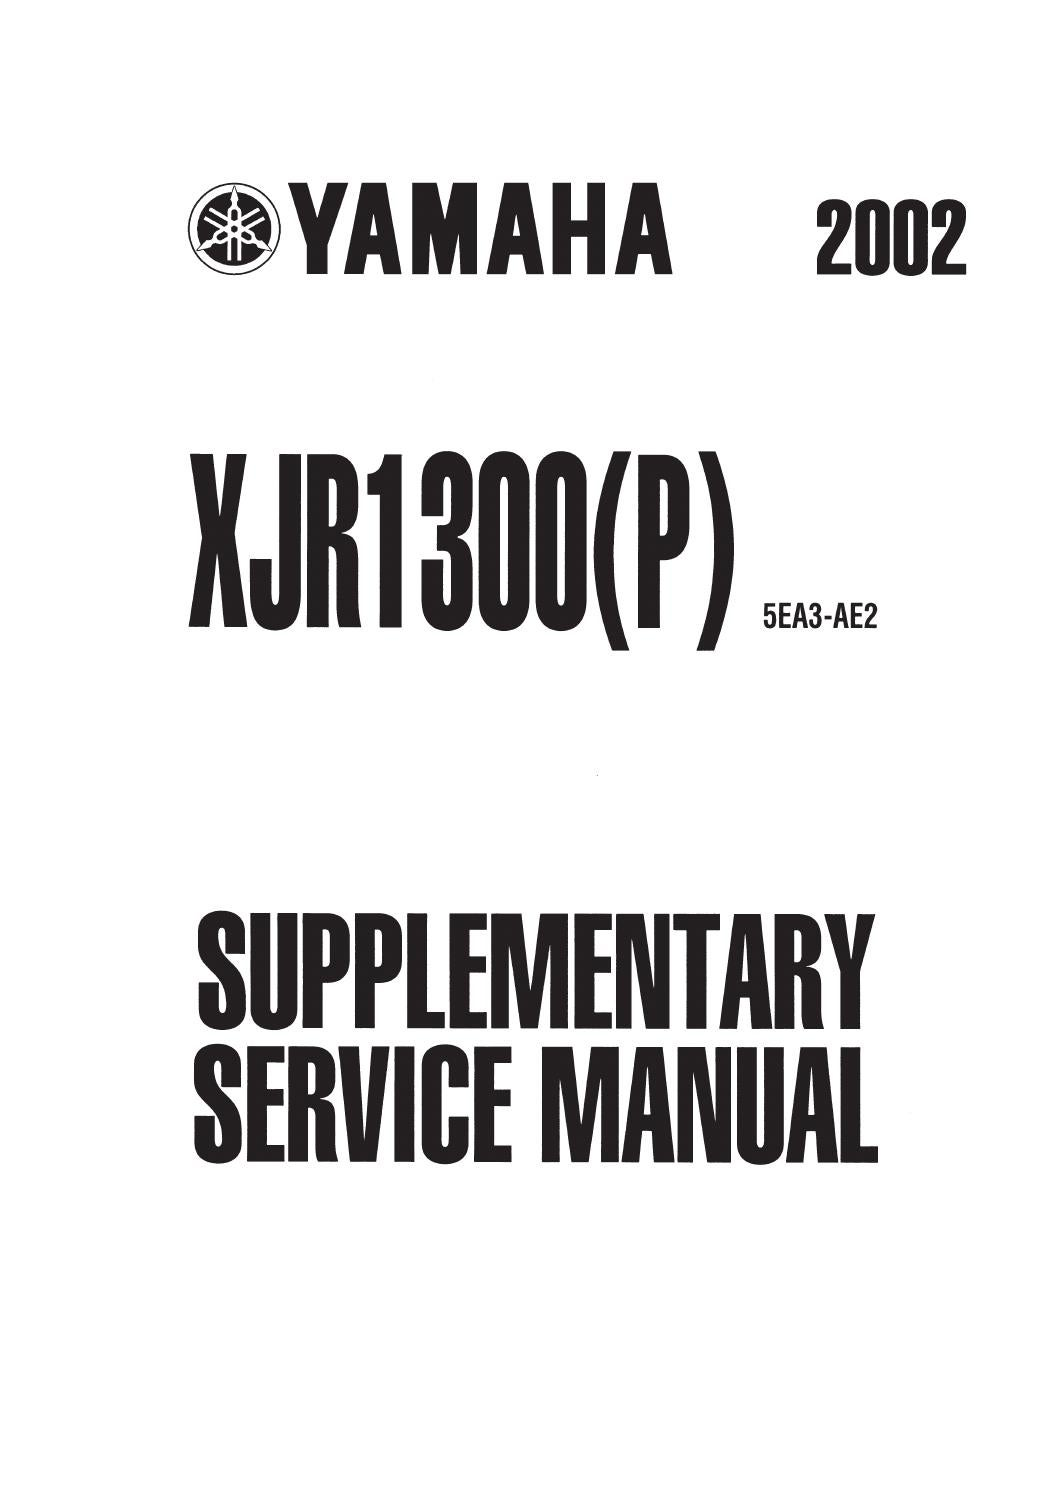 Supplementary Service Manual XJR1300(P) '02 5EA3-AE2 (E